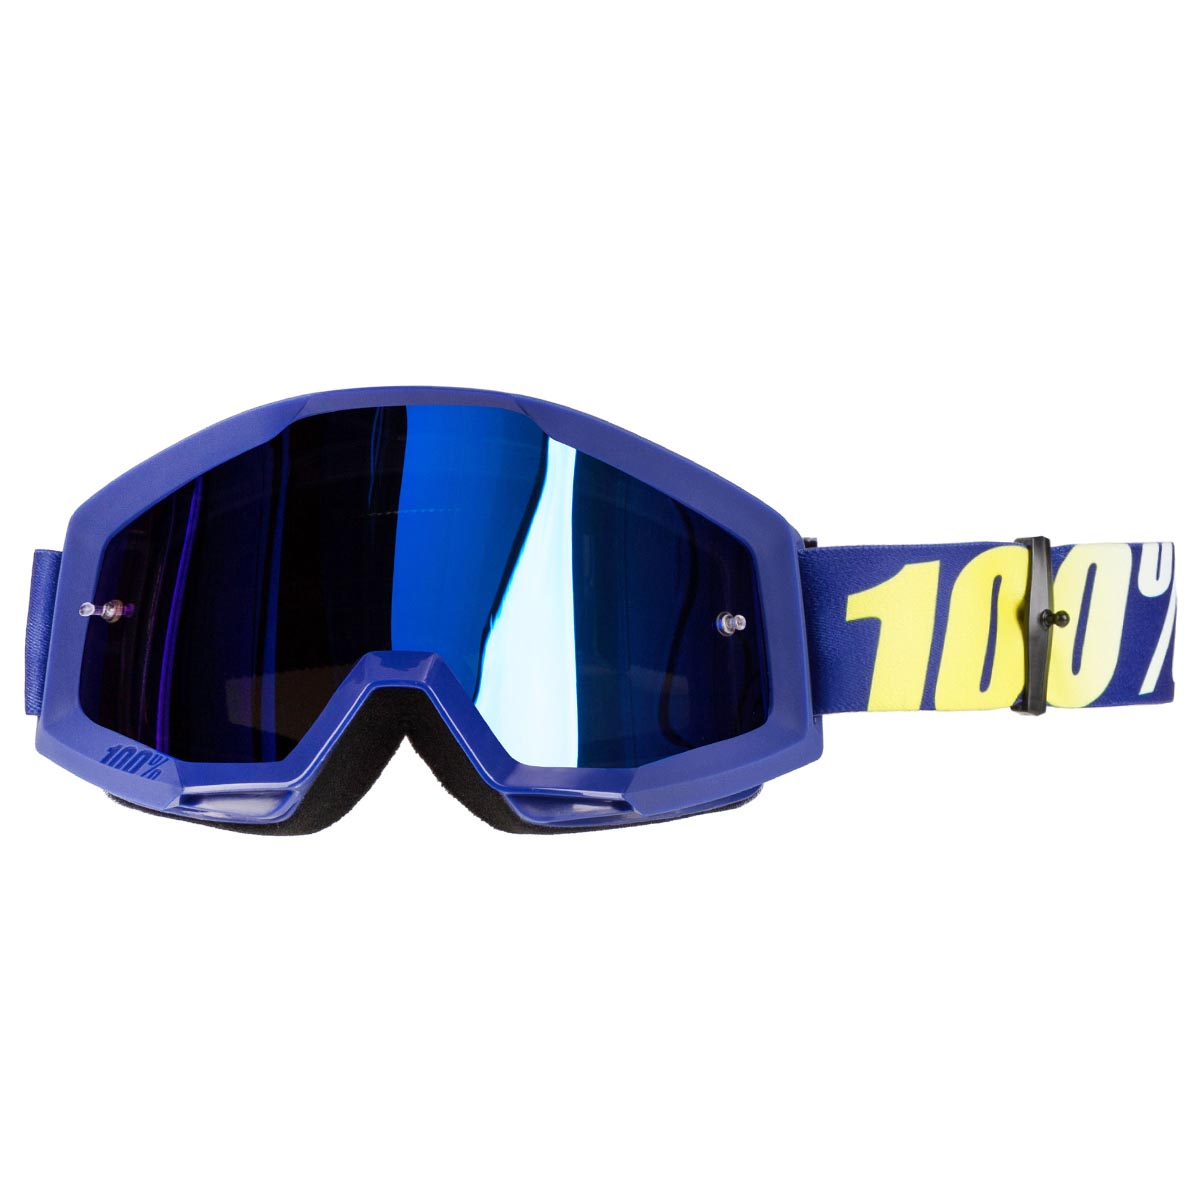 Offroad MX MTB Motocross 100/% STRATA Goggles ALL COLORS CLEAR OR MIRROR LENS